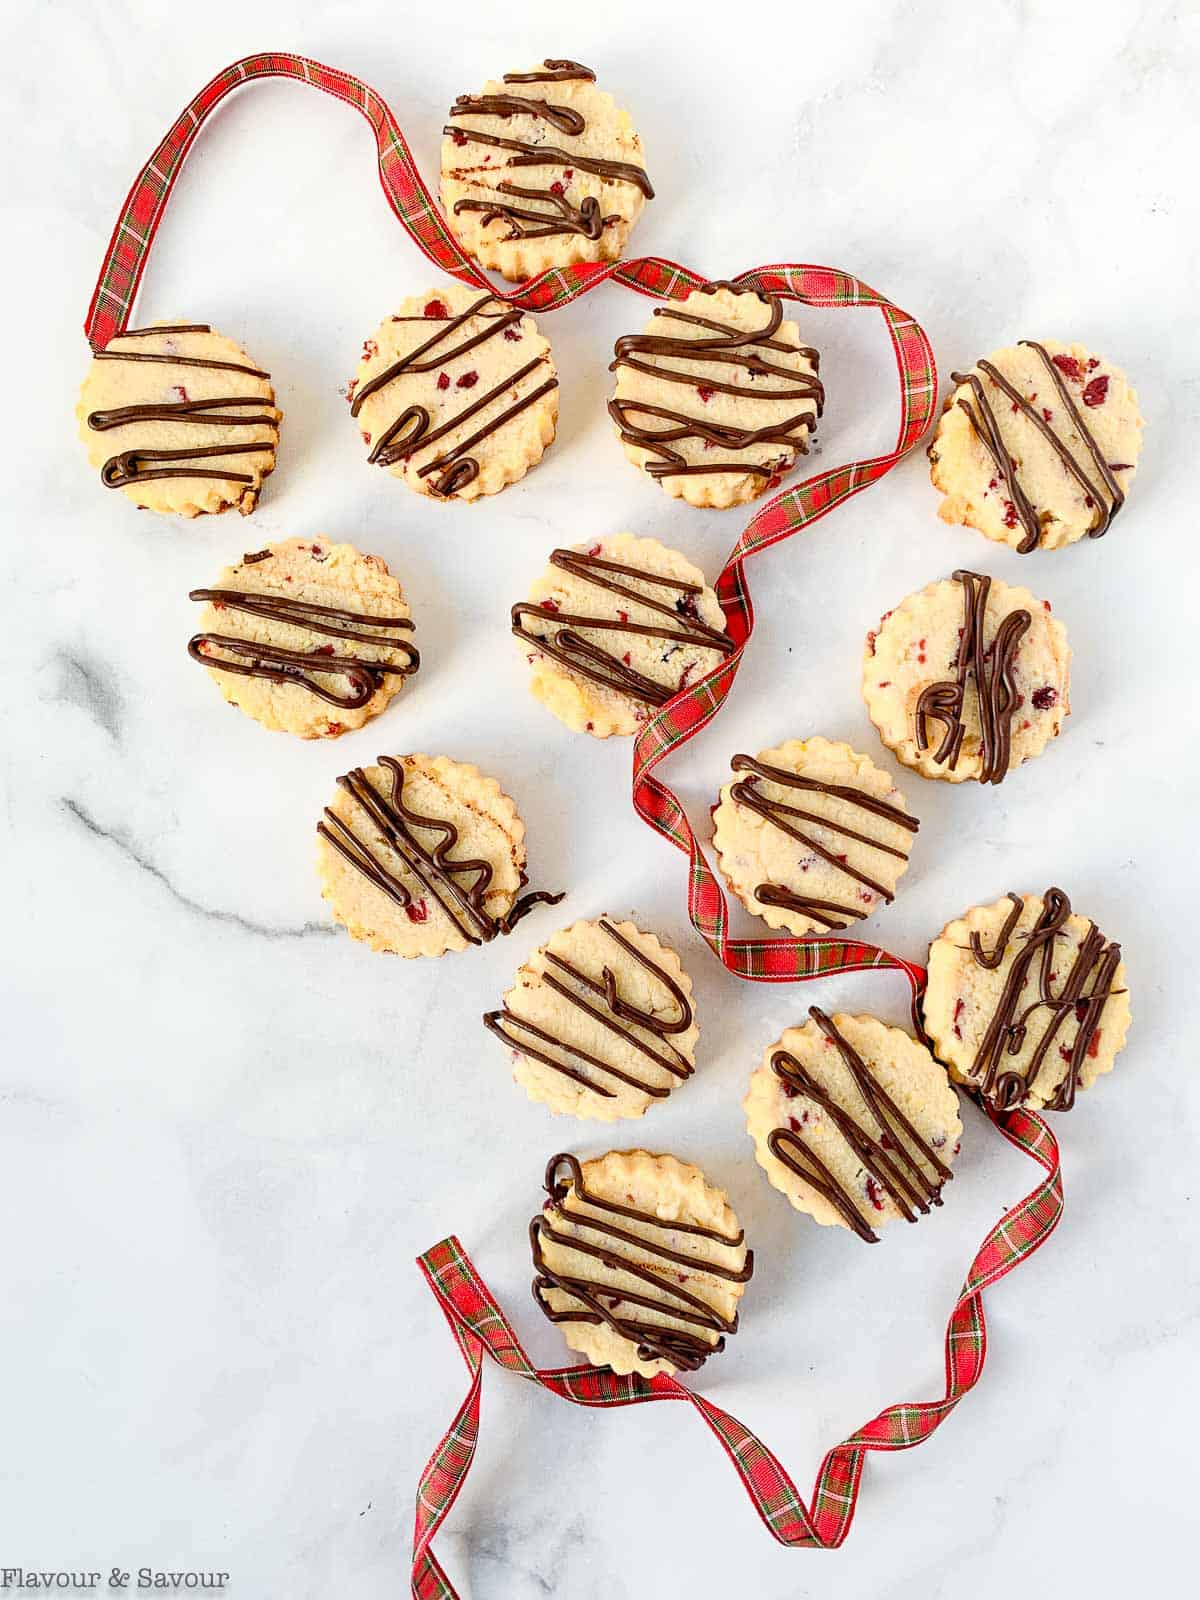 Overhead view of shortbread cookies with plaid ribbon